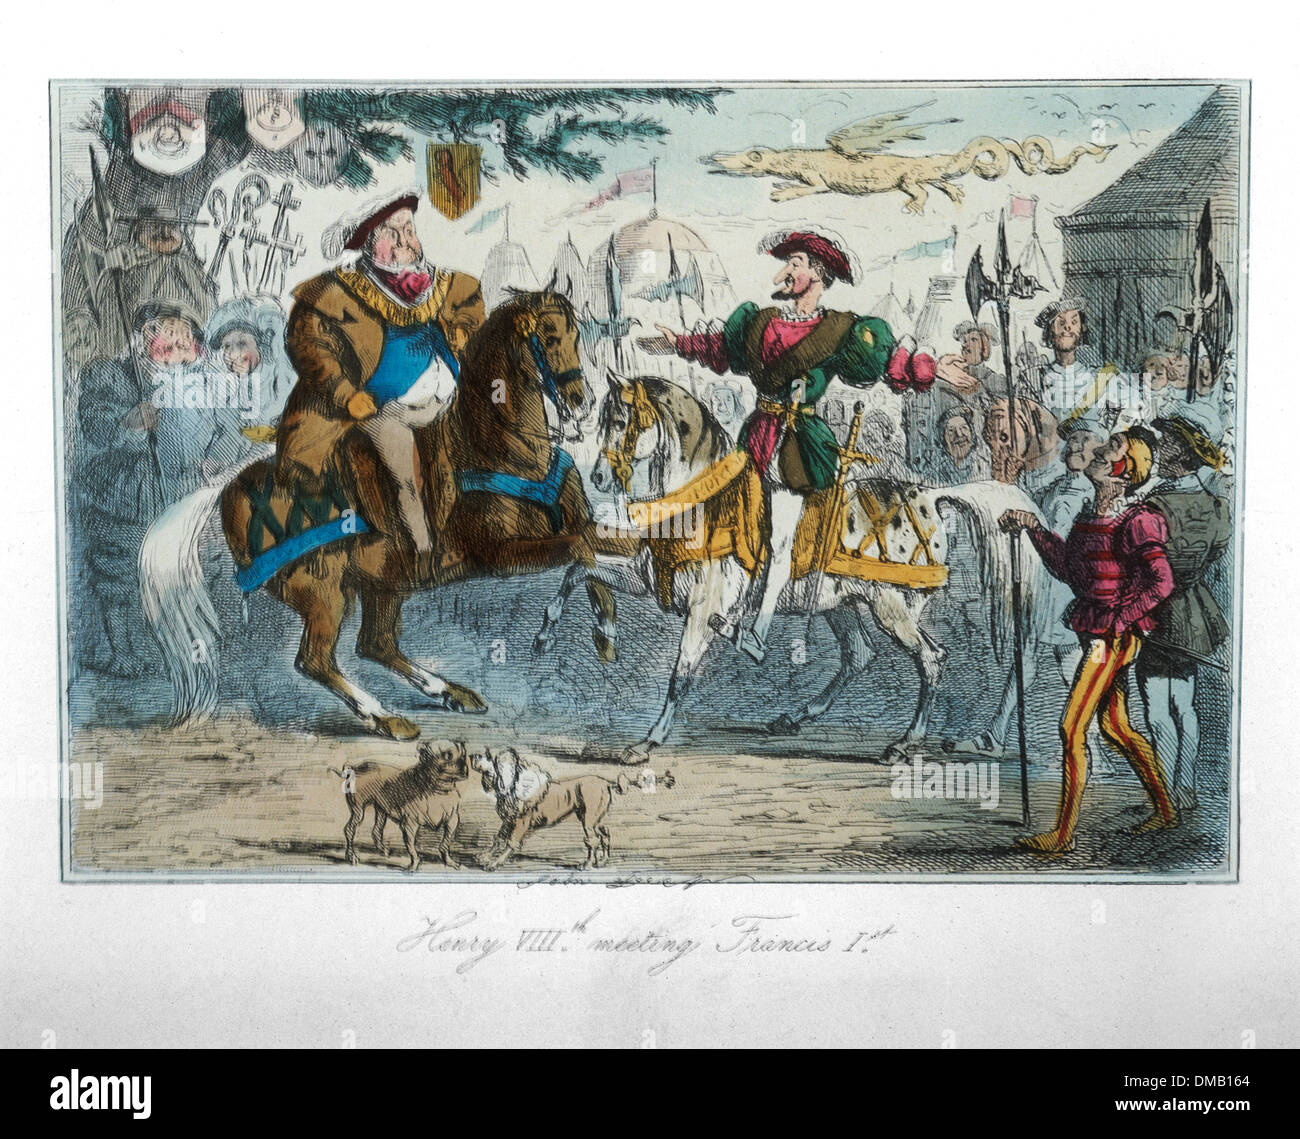 Henry VIII Meeting Francis I, Comic History of England, Colored Etching by John Leech, 1850 - Stock Image